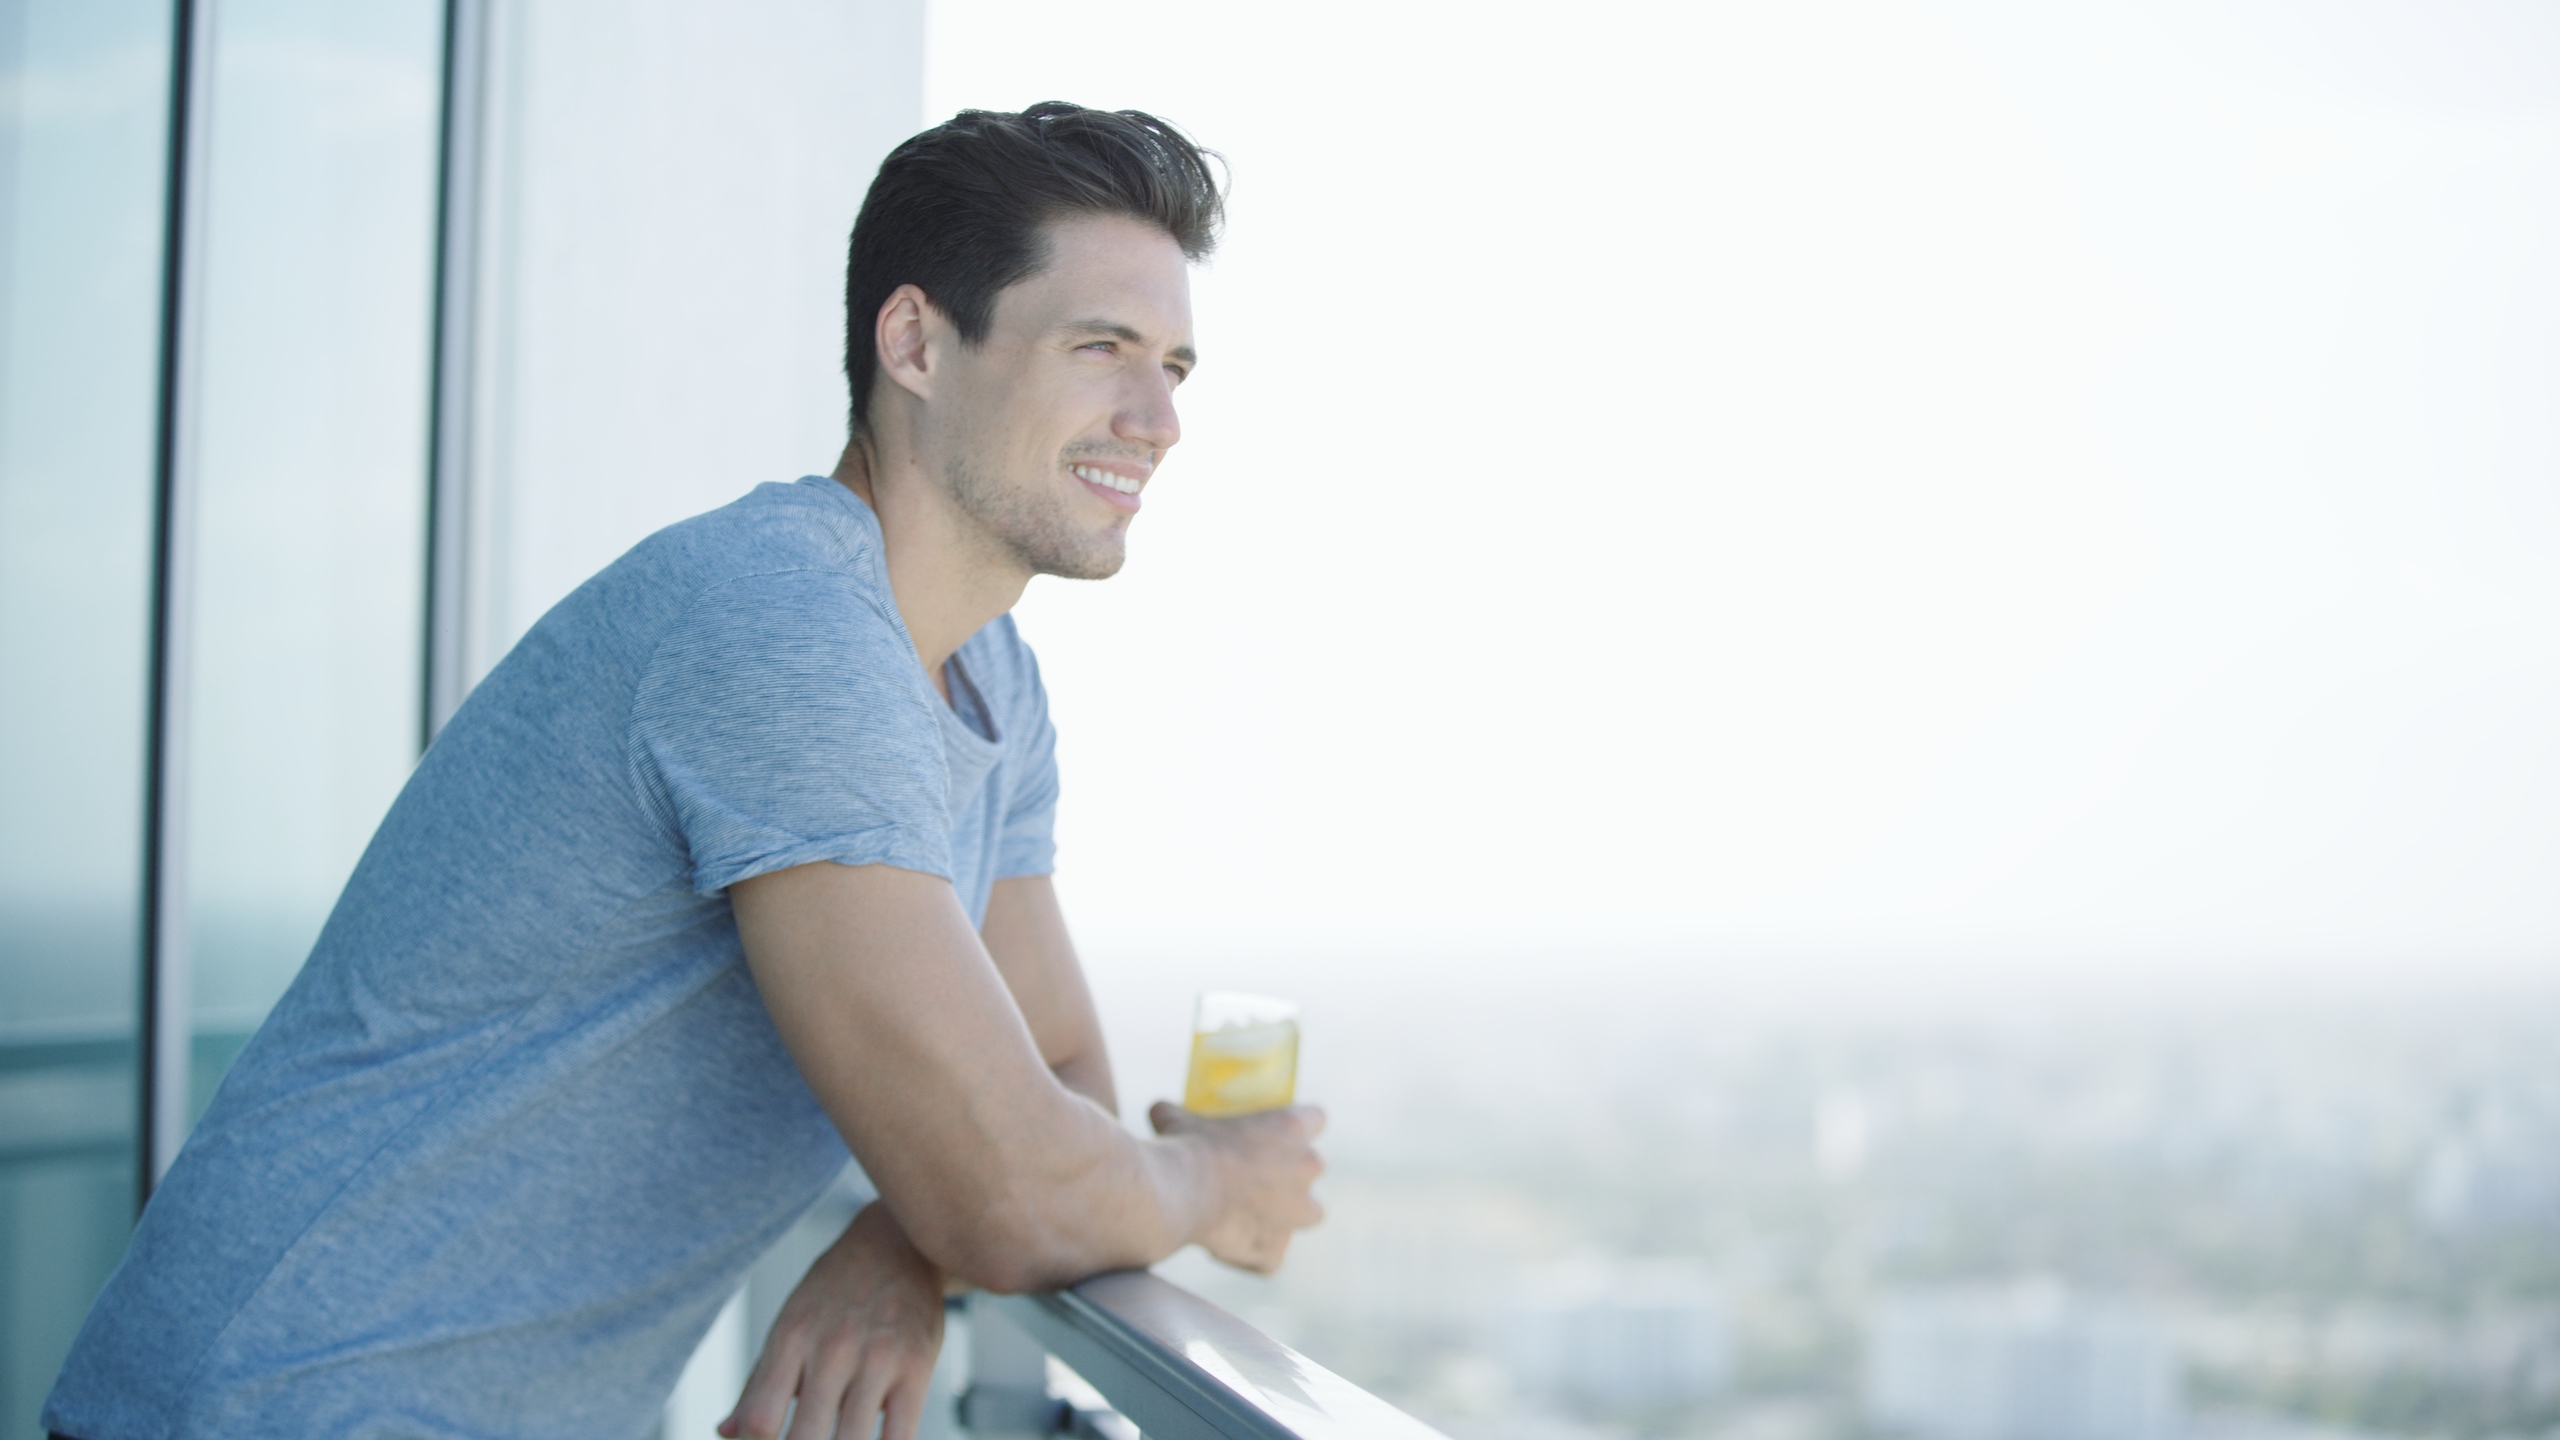 Smiling Man Looks Over The City Holding A Cup Of Wake Me UP - The Best Morning Drink For Metabolism